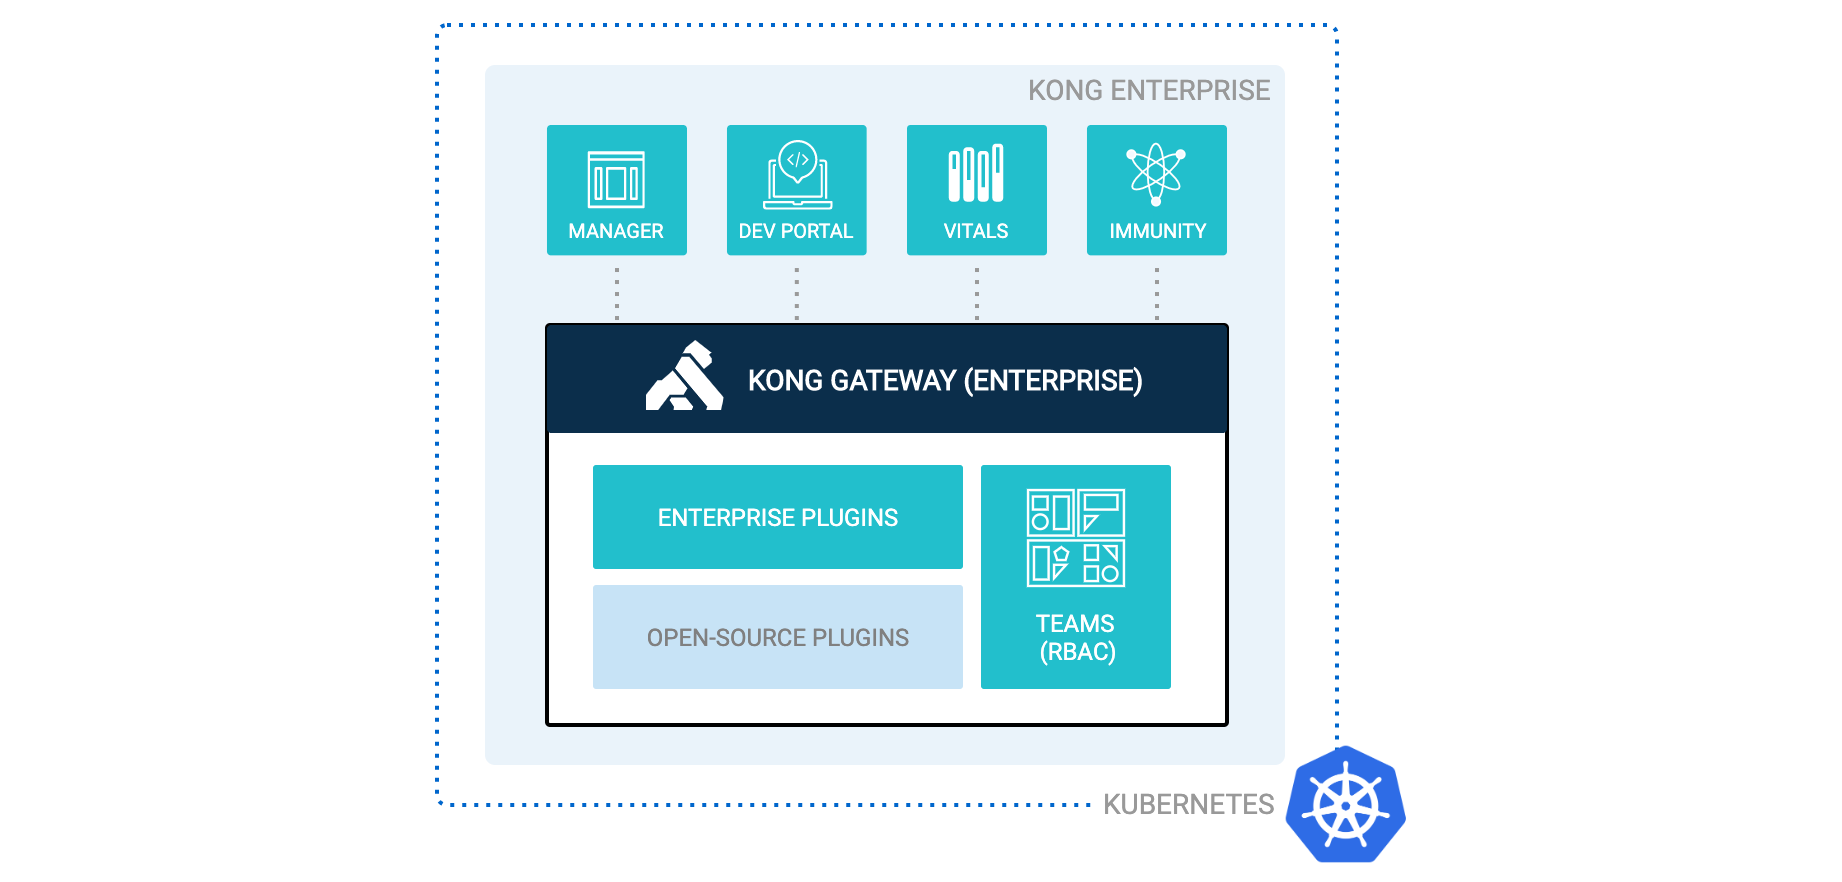 Kong Enterprise on Kubernetes